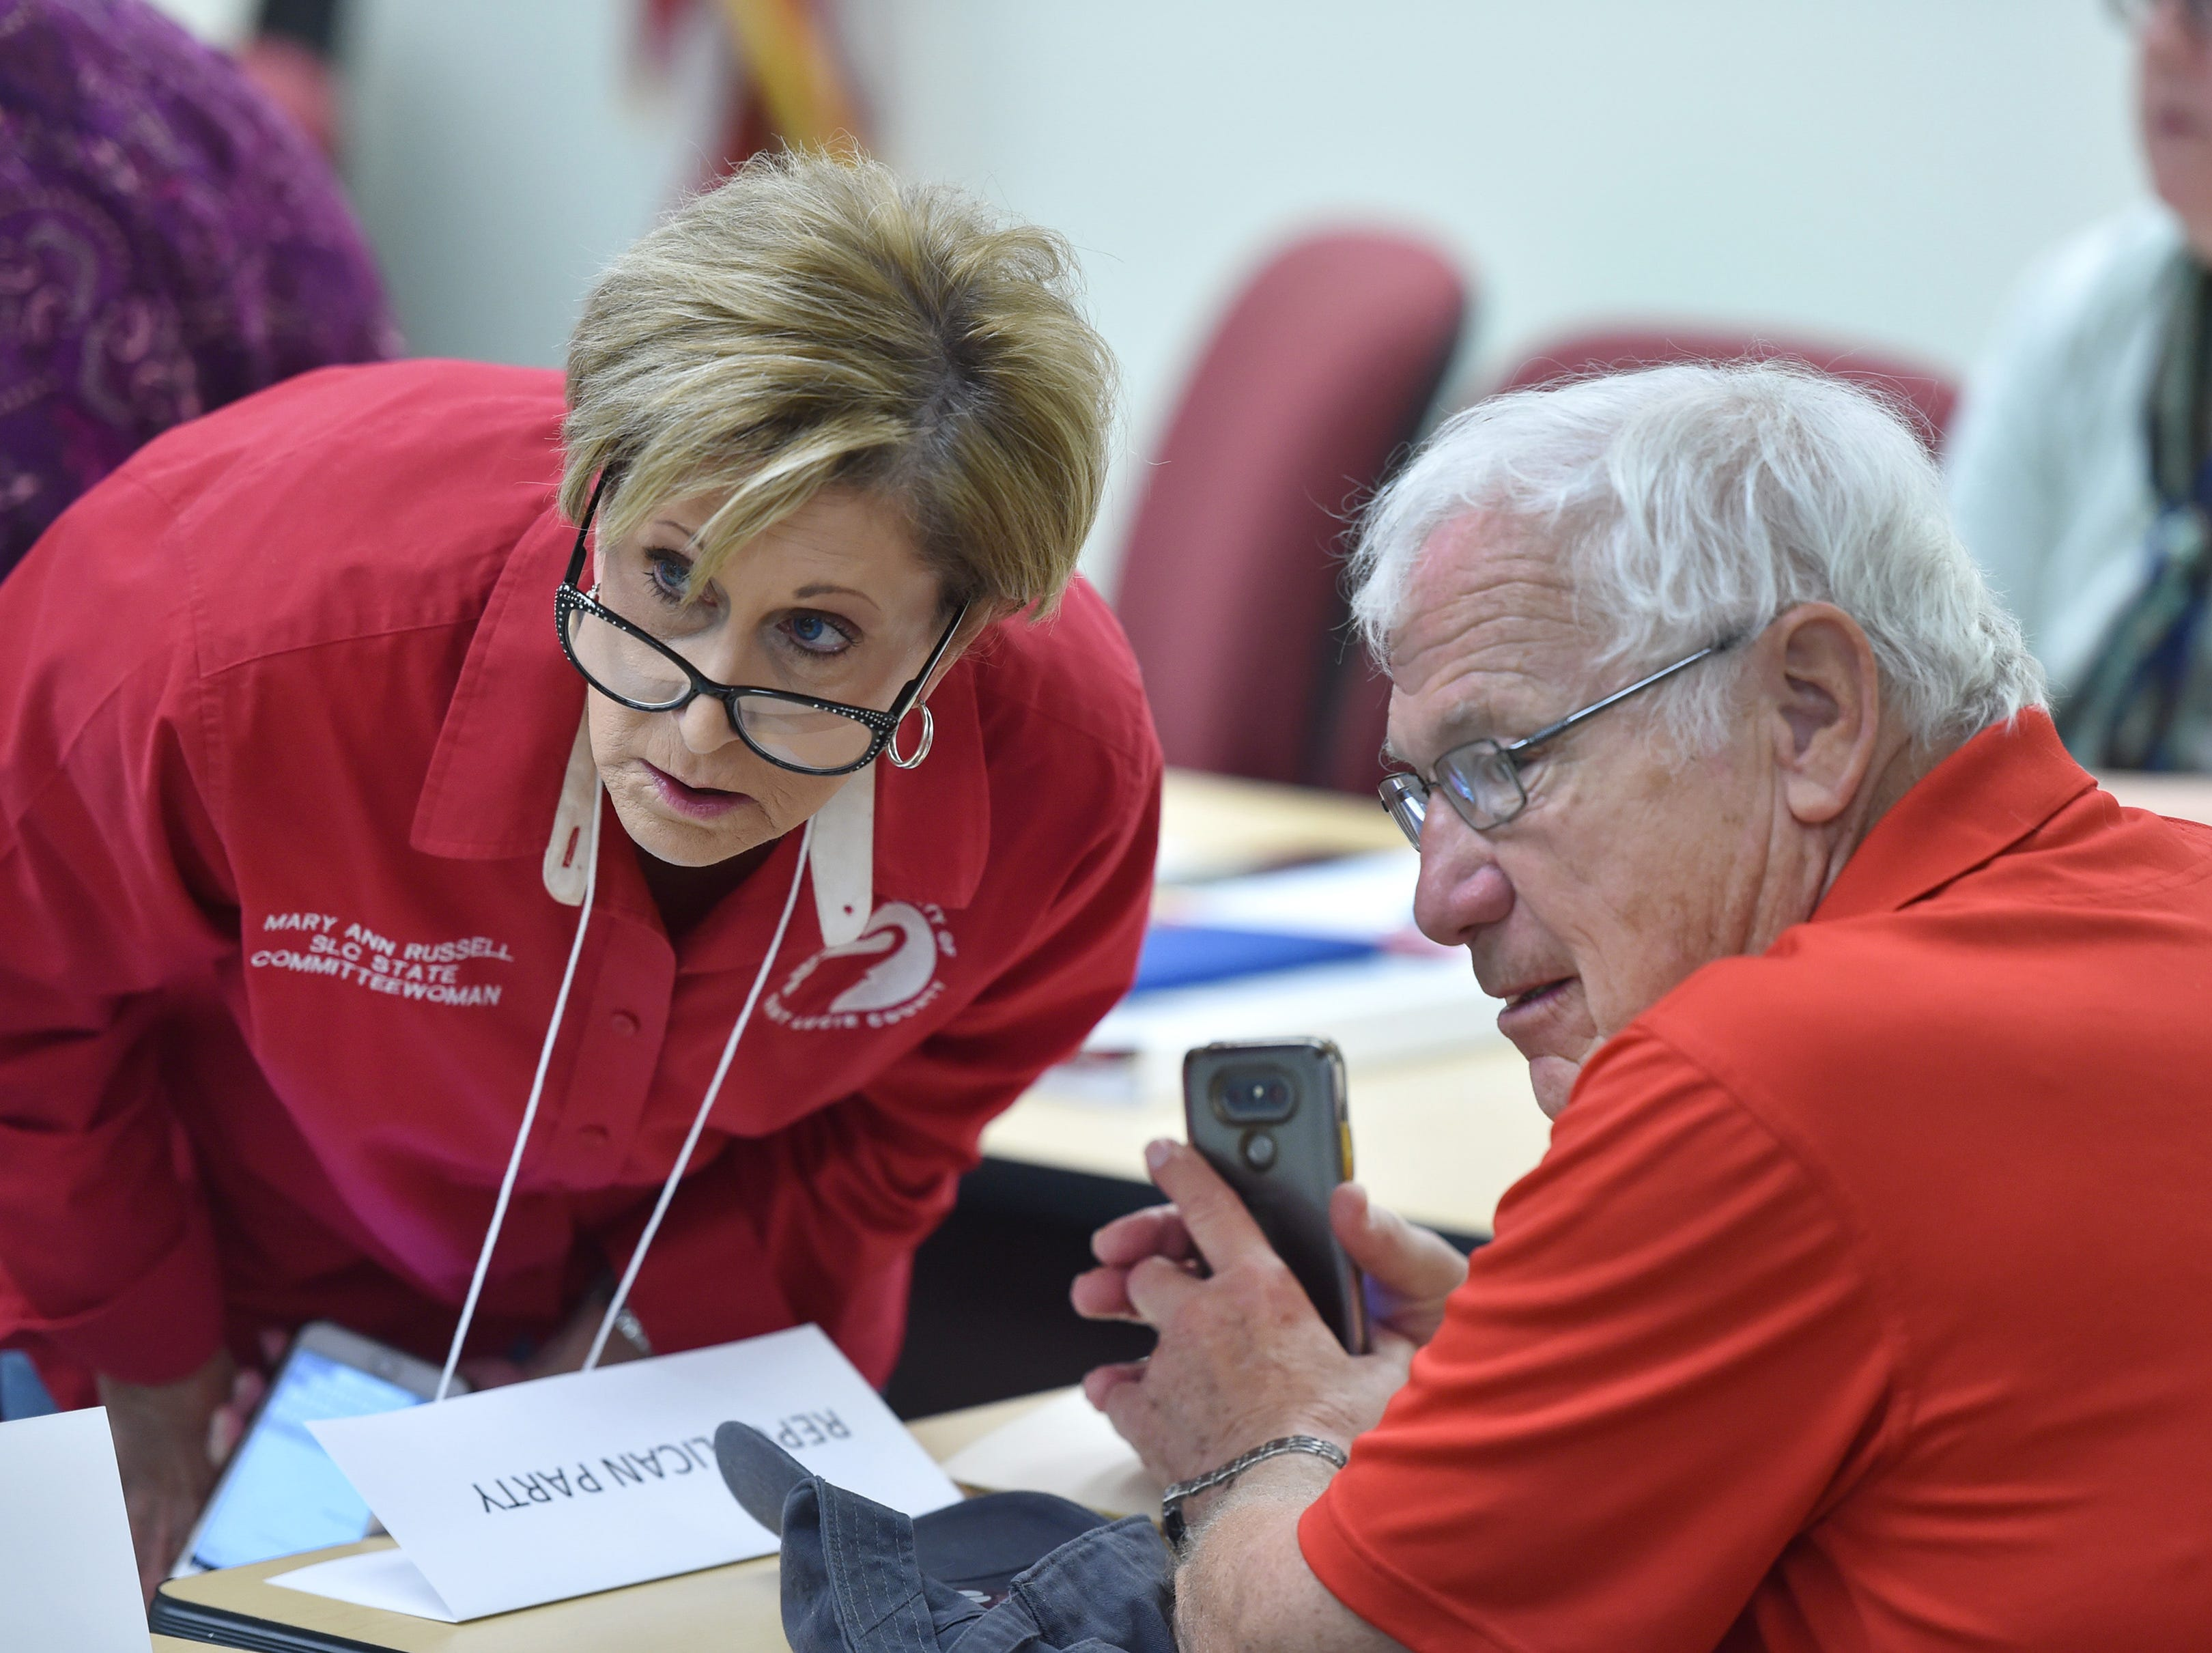 St. Lucie County Republican Executive Committee members Mary Ann Russell (left) and Alan Winslow watch over the proceedings at the St. Lucie County Supervisor of Elections office as members of the media, Republican and Democrat party witnesses, and the general public, watch the elections office staff perform a machine recount on Monday, Nov. 12, 2018, in Fort Pierce.